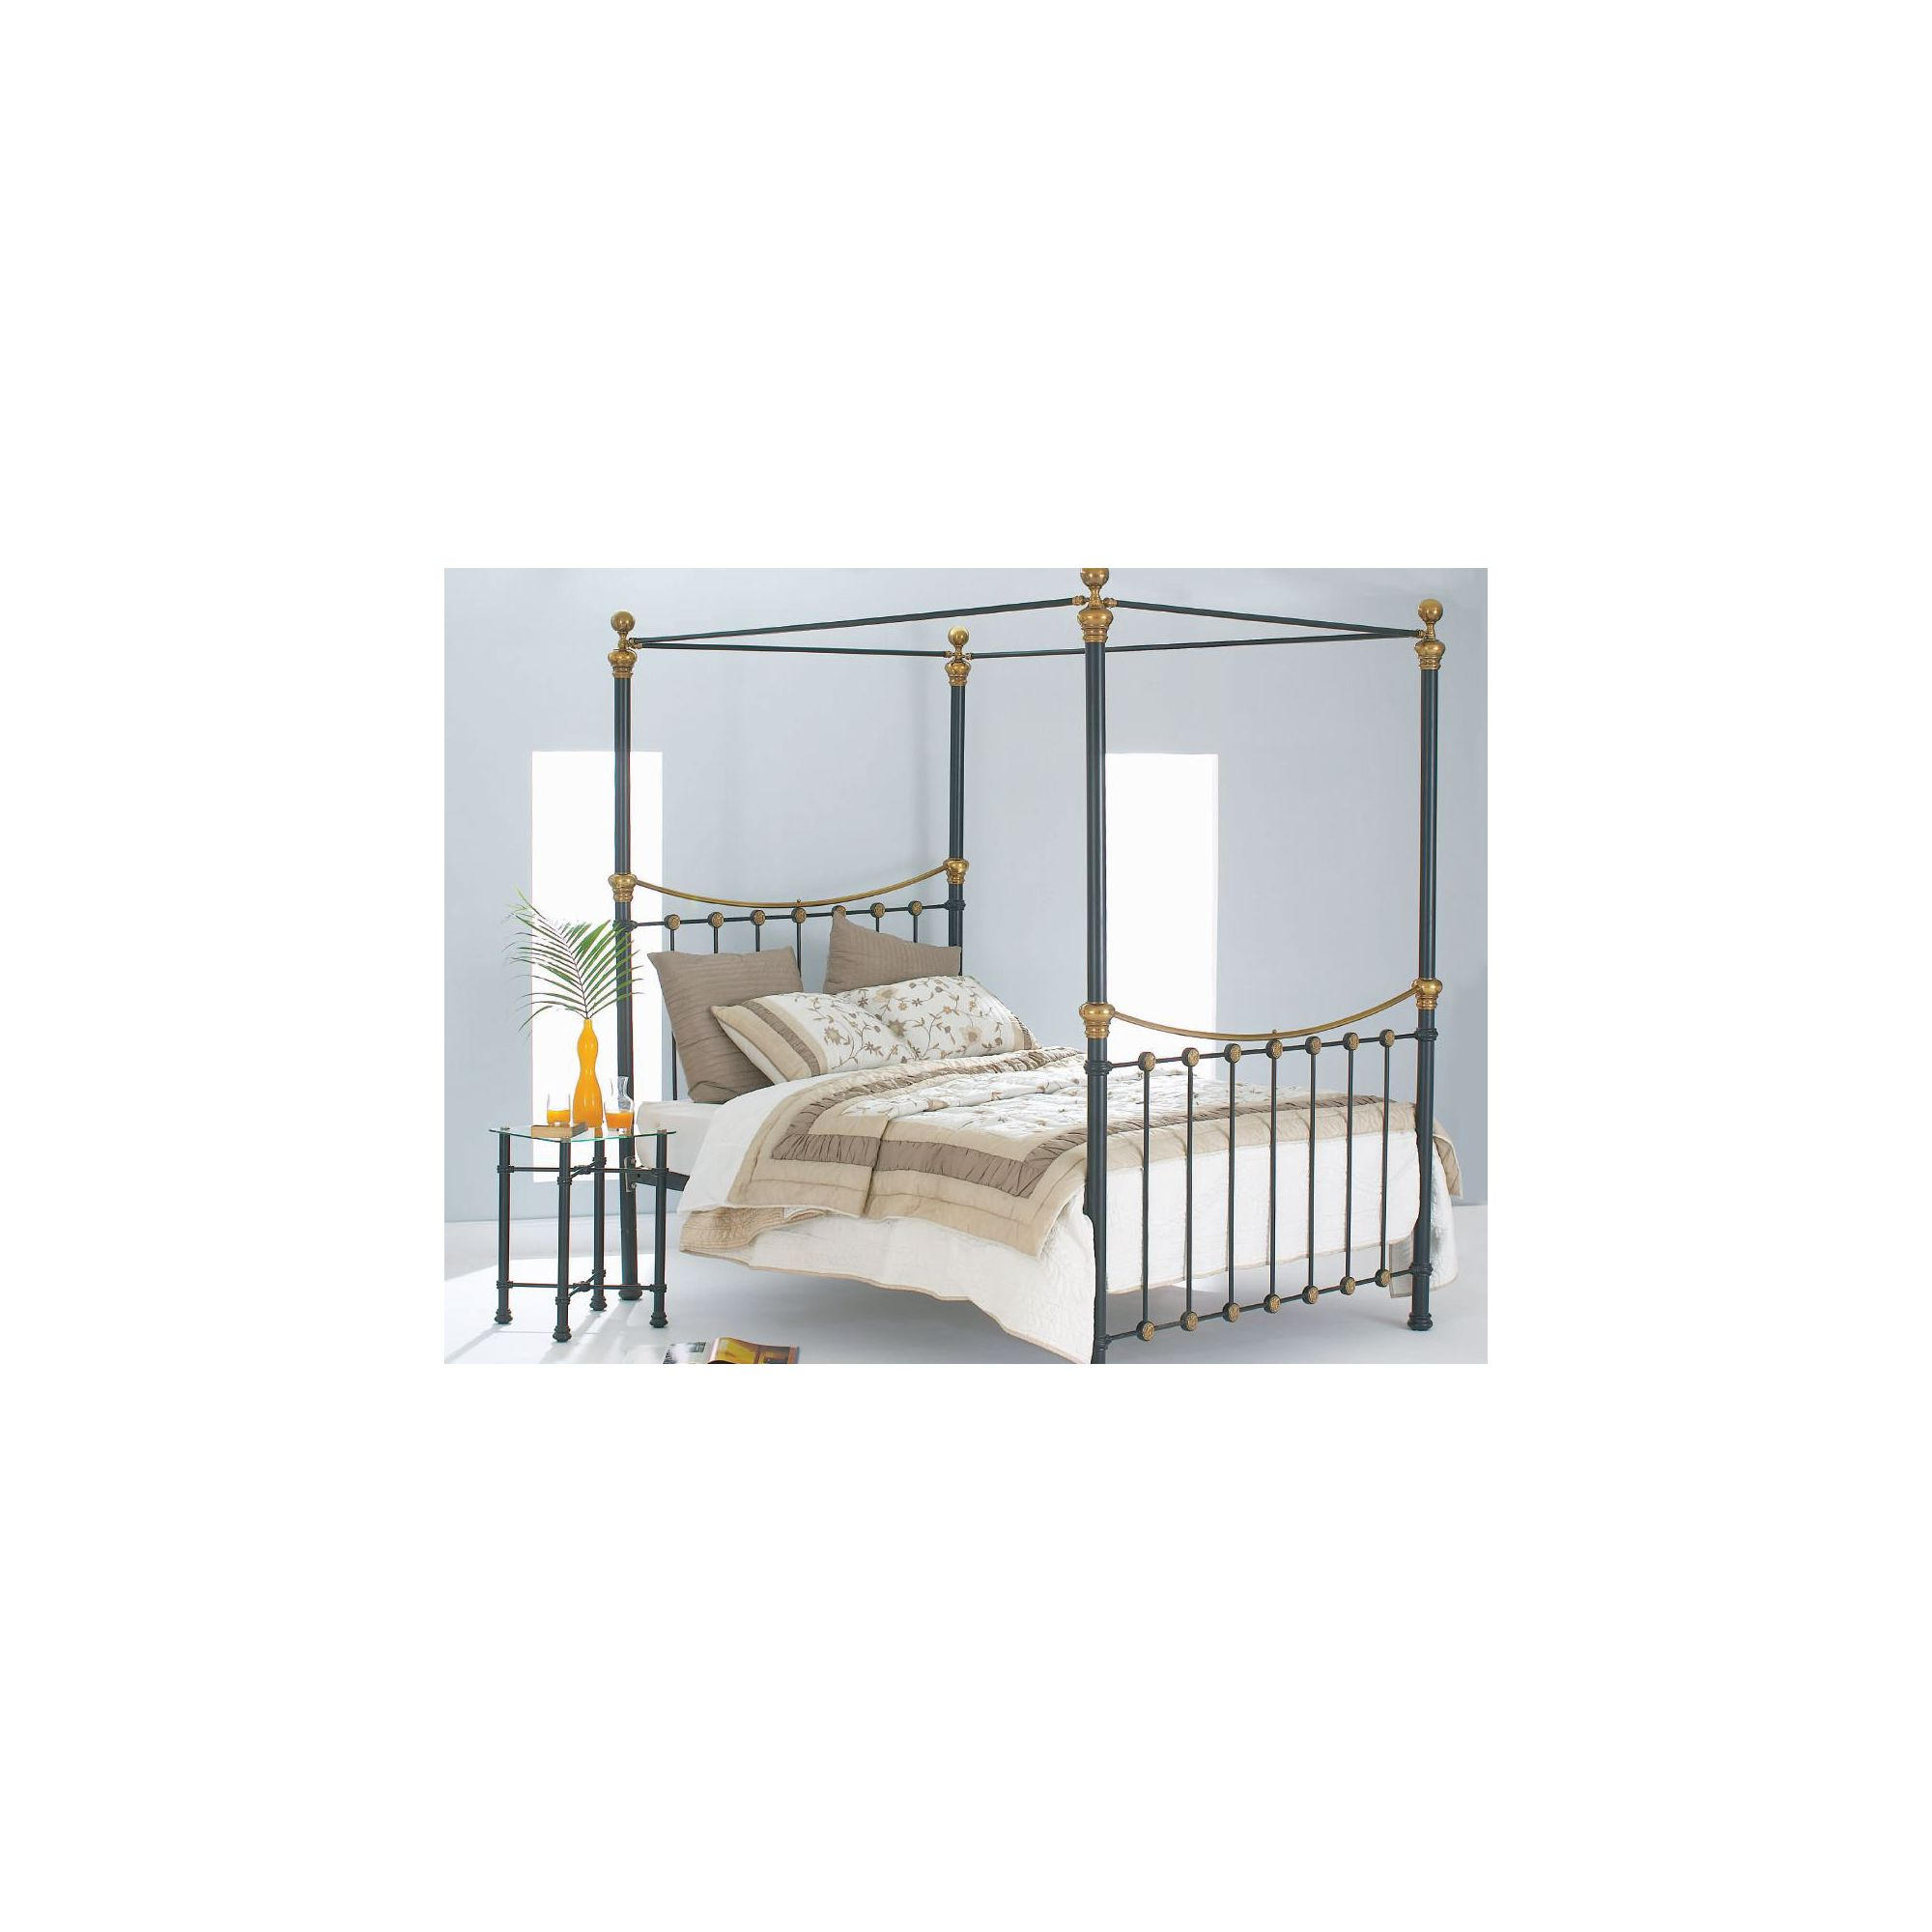 OBC Rannoch Bed Frame - Double at Tesco Direct